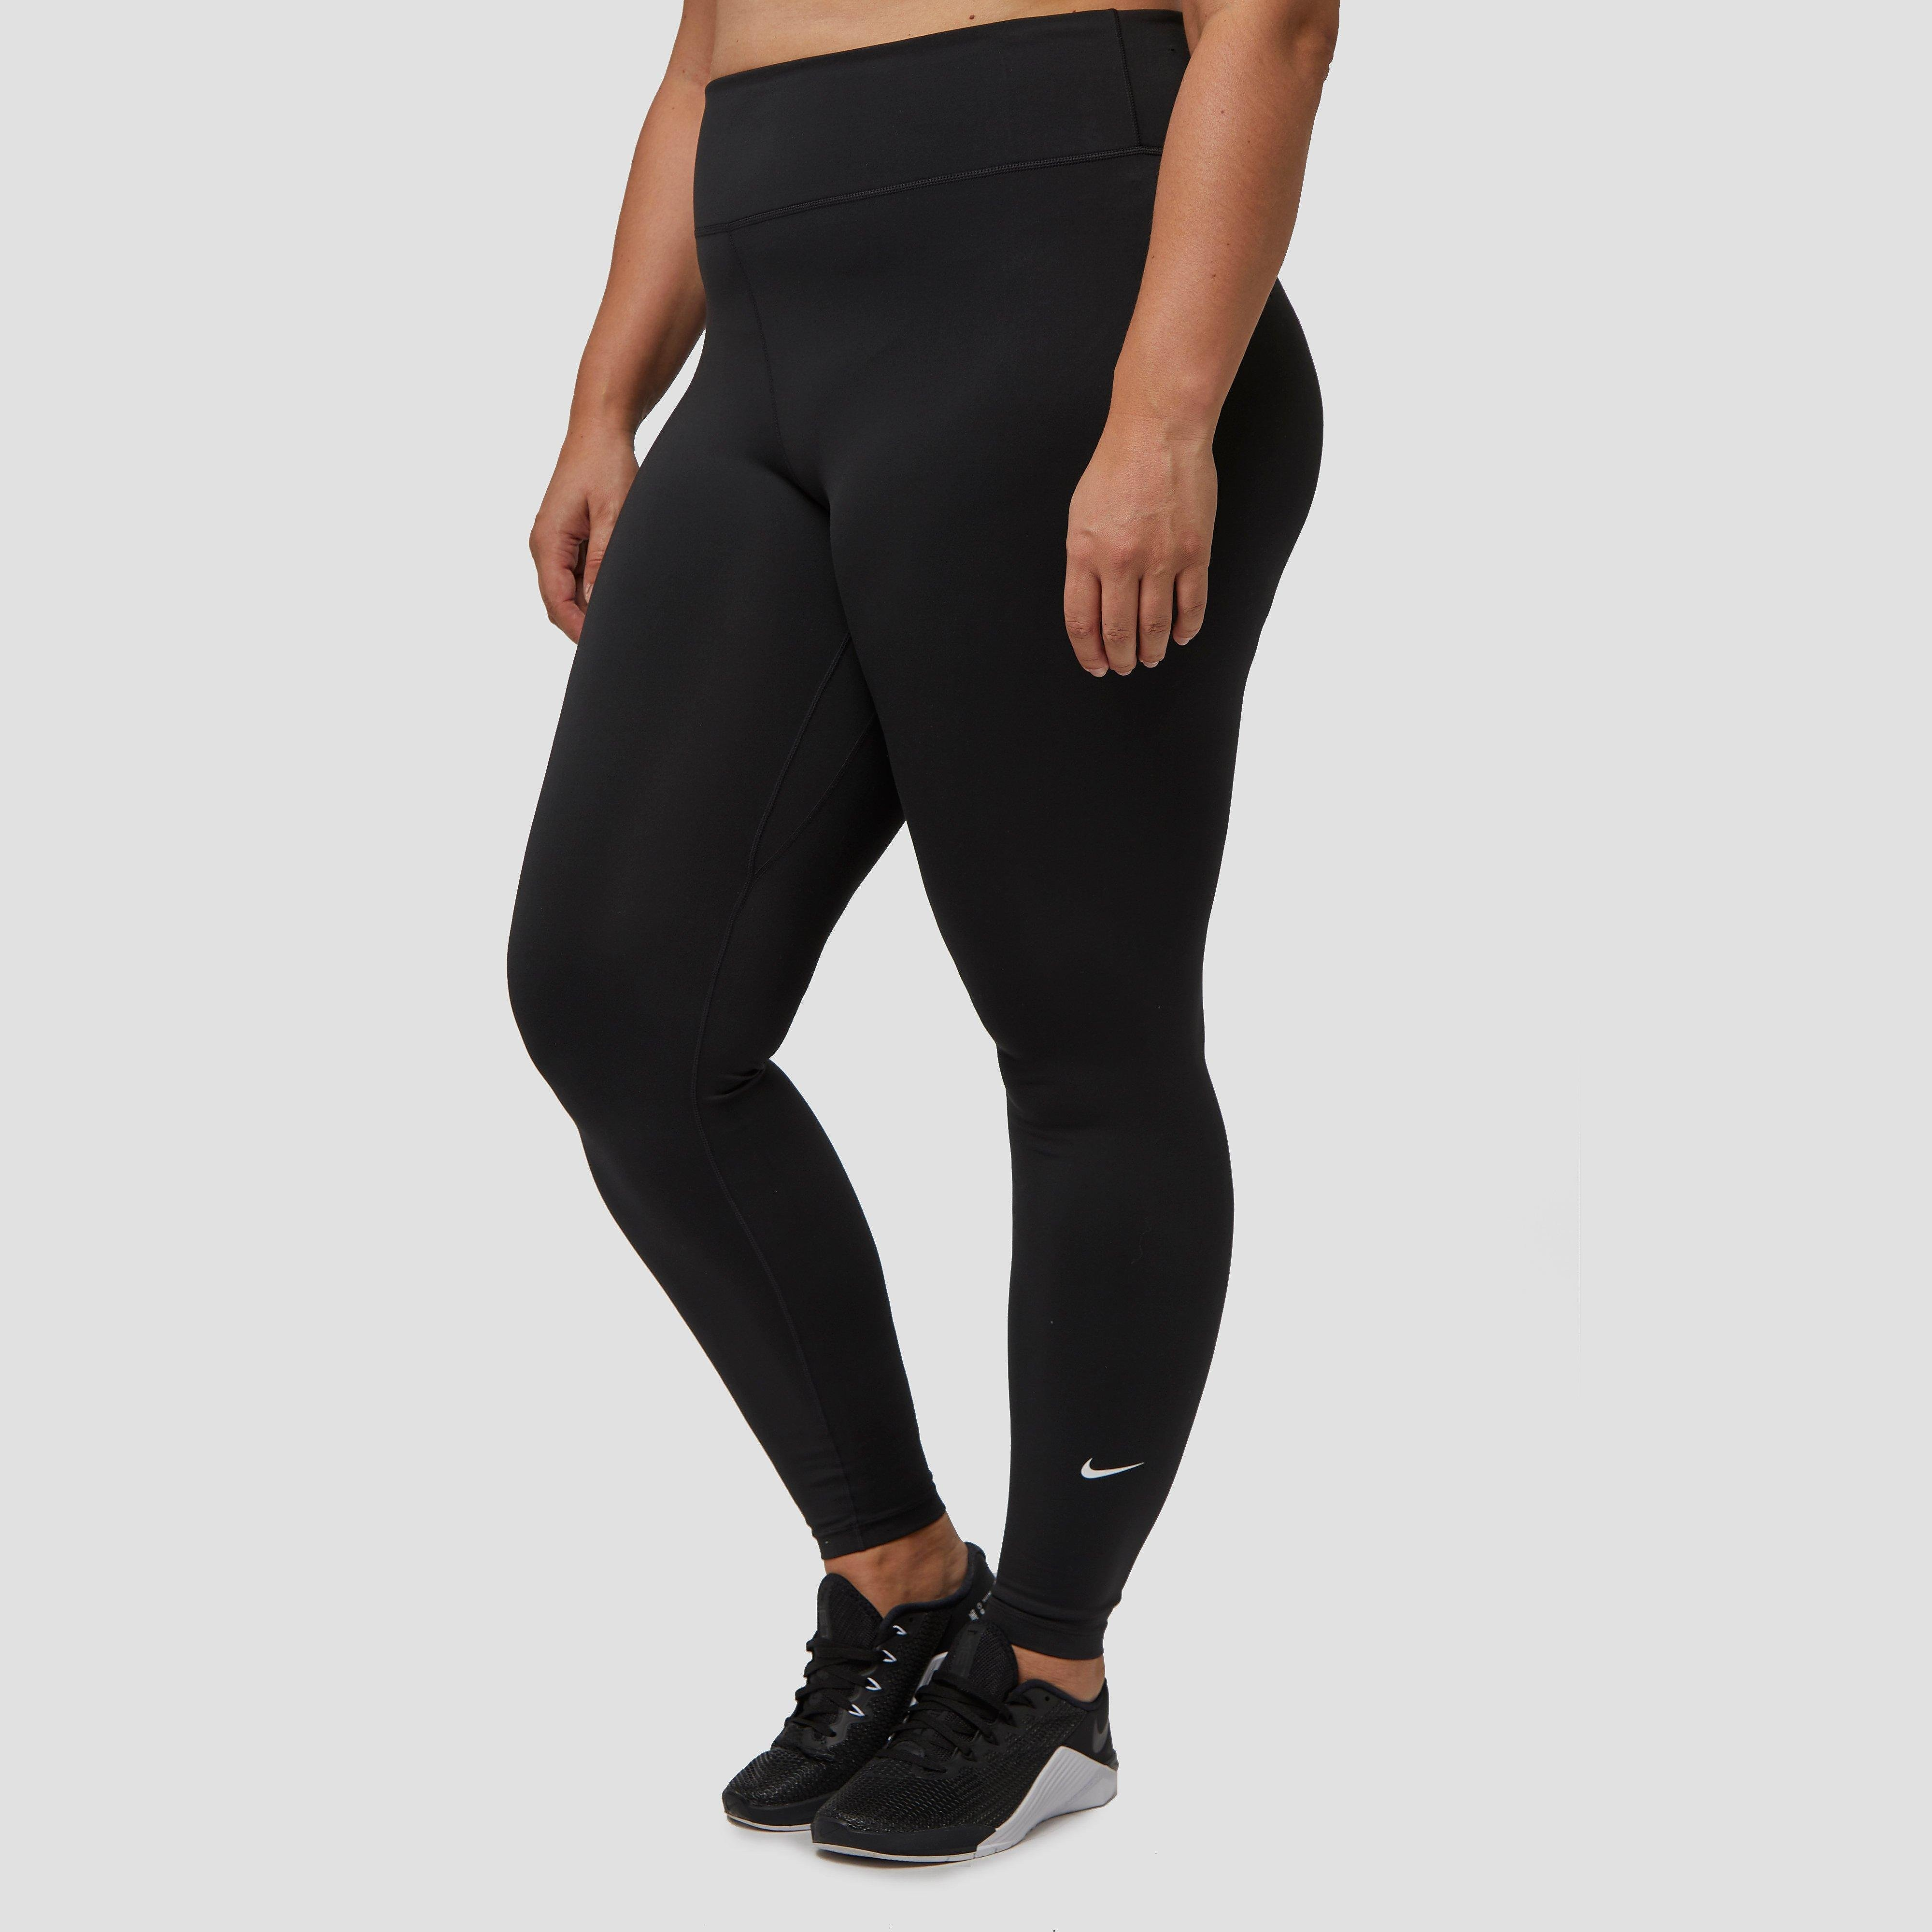 NIKE One plus size sporttight zwart dames Dames